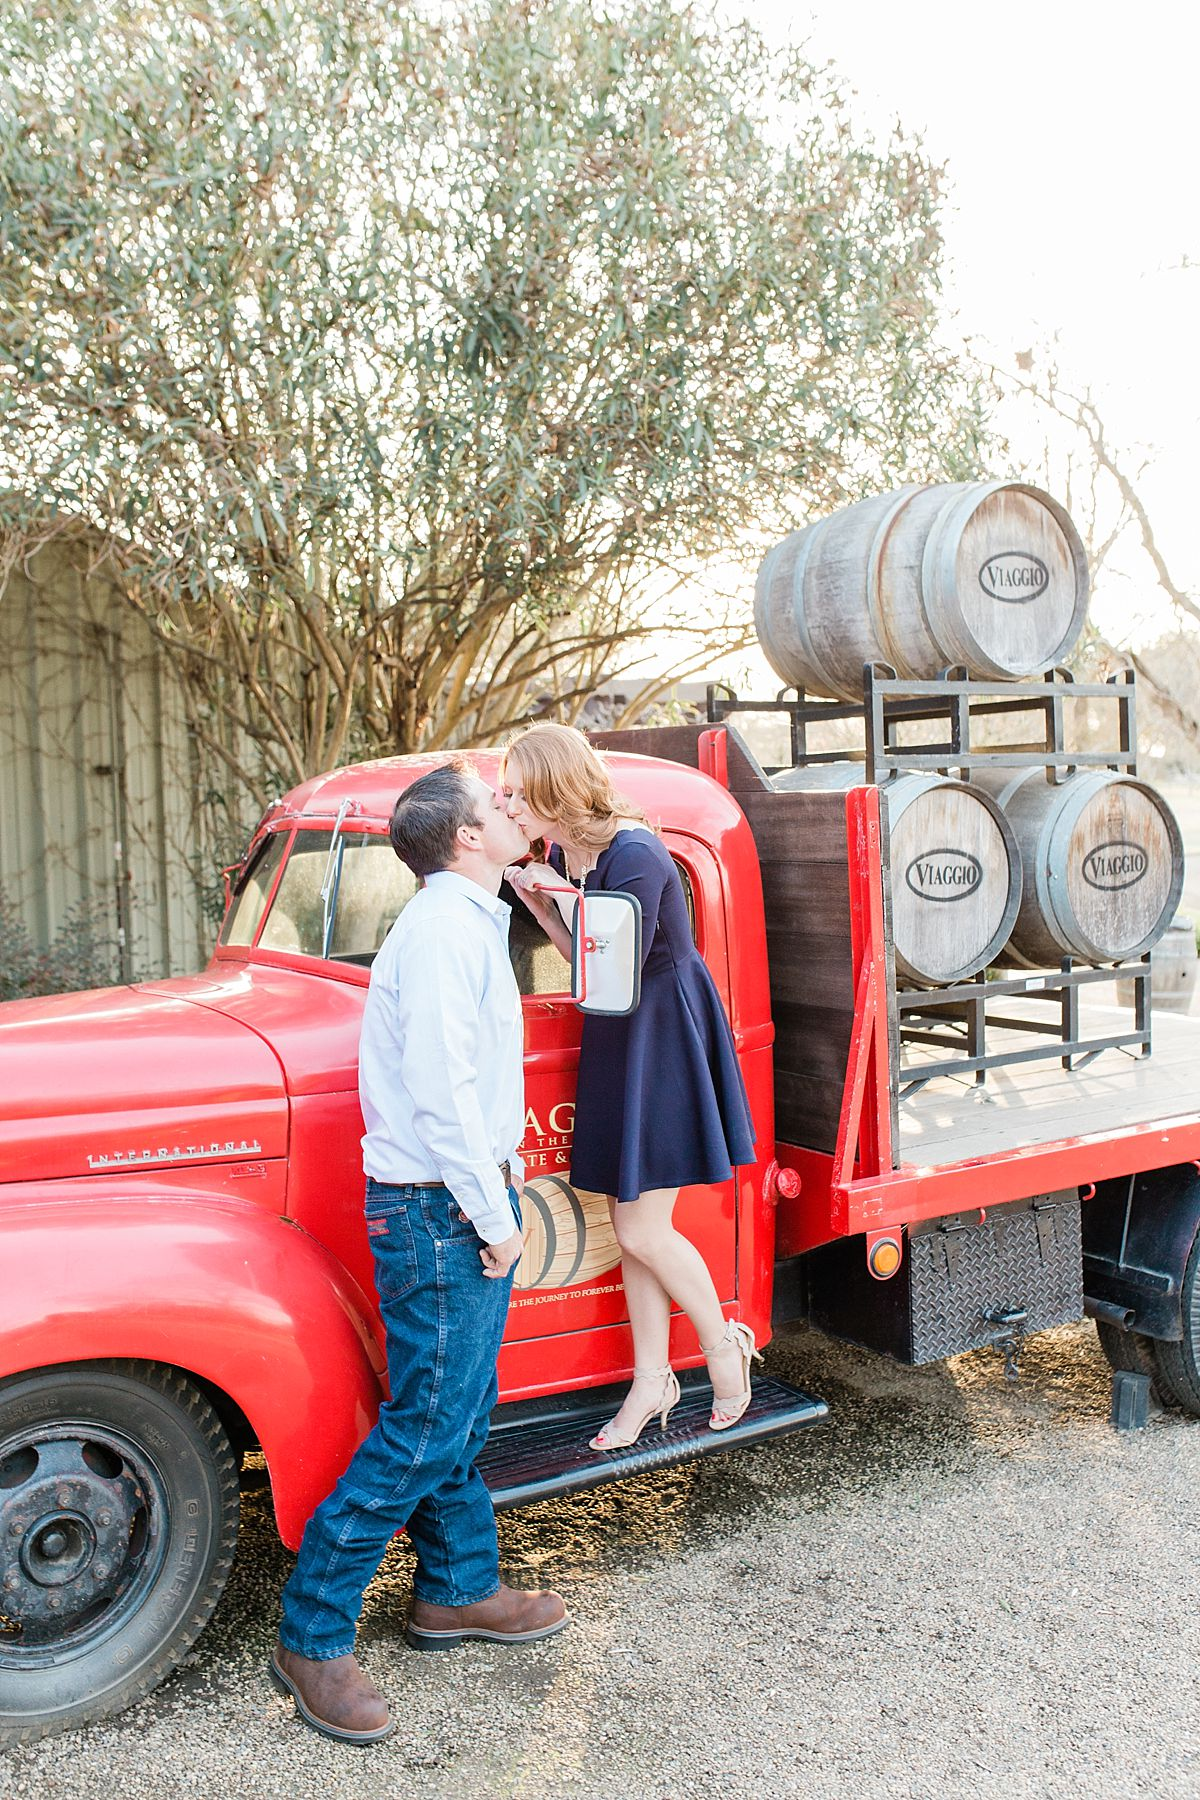 Viaggio Winery Engagement Session - Liz and TJ - Lodi Winery Wedding Photographer_0017.jpg